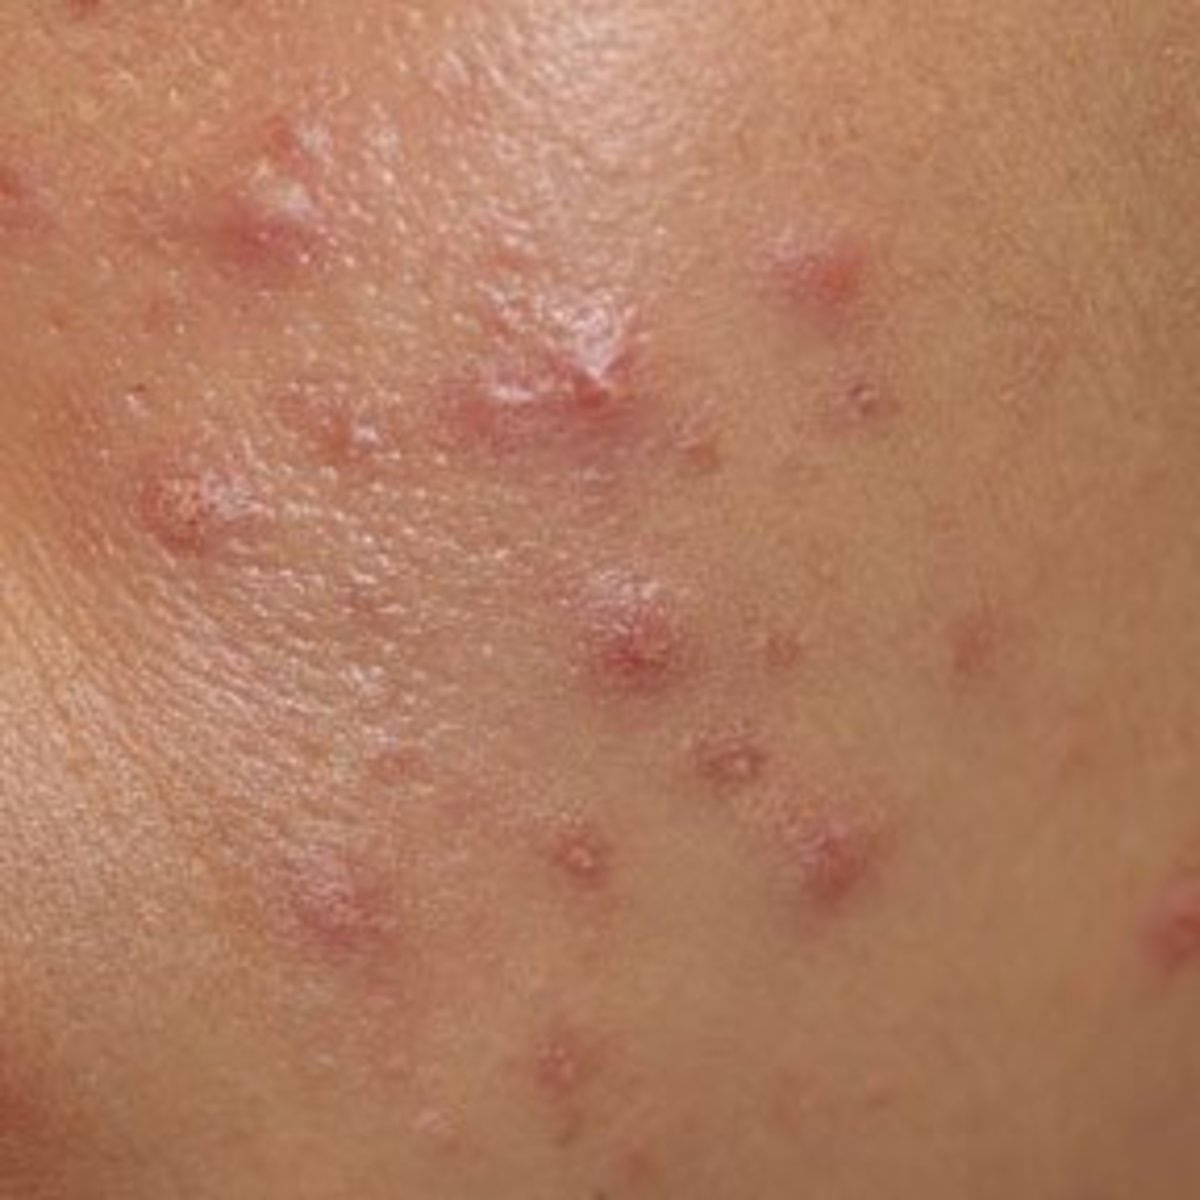 Pimples may appear alone or as an outbreak and are filled with white pus. Pimple sink deeper into the skin than herpes blisters.